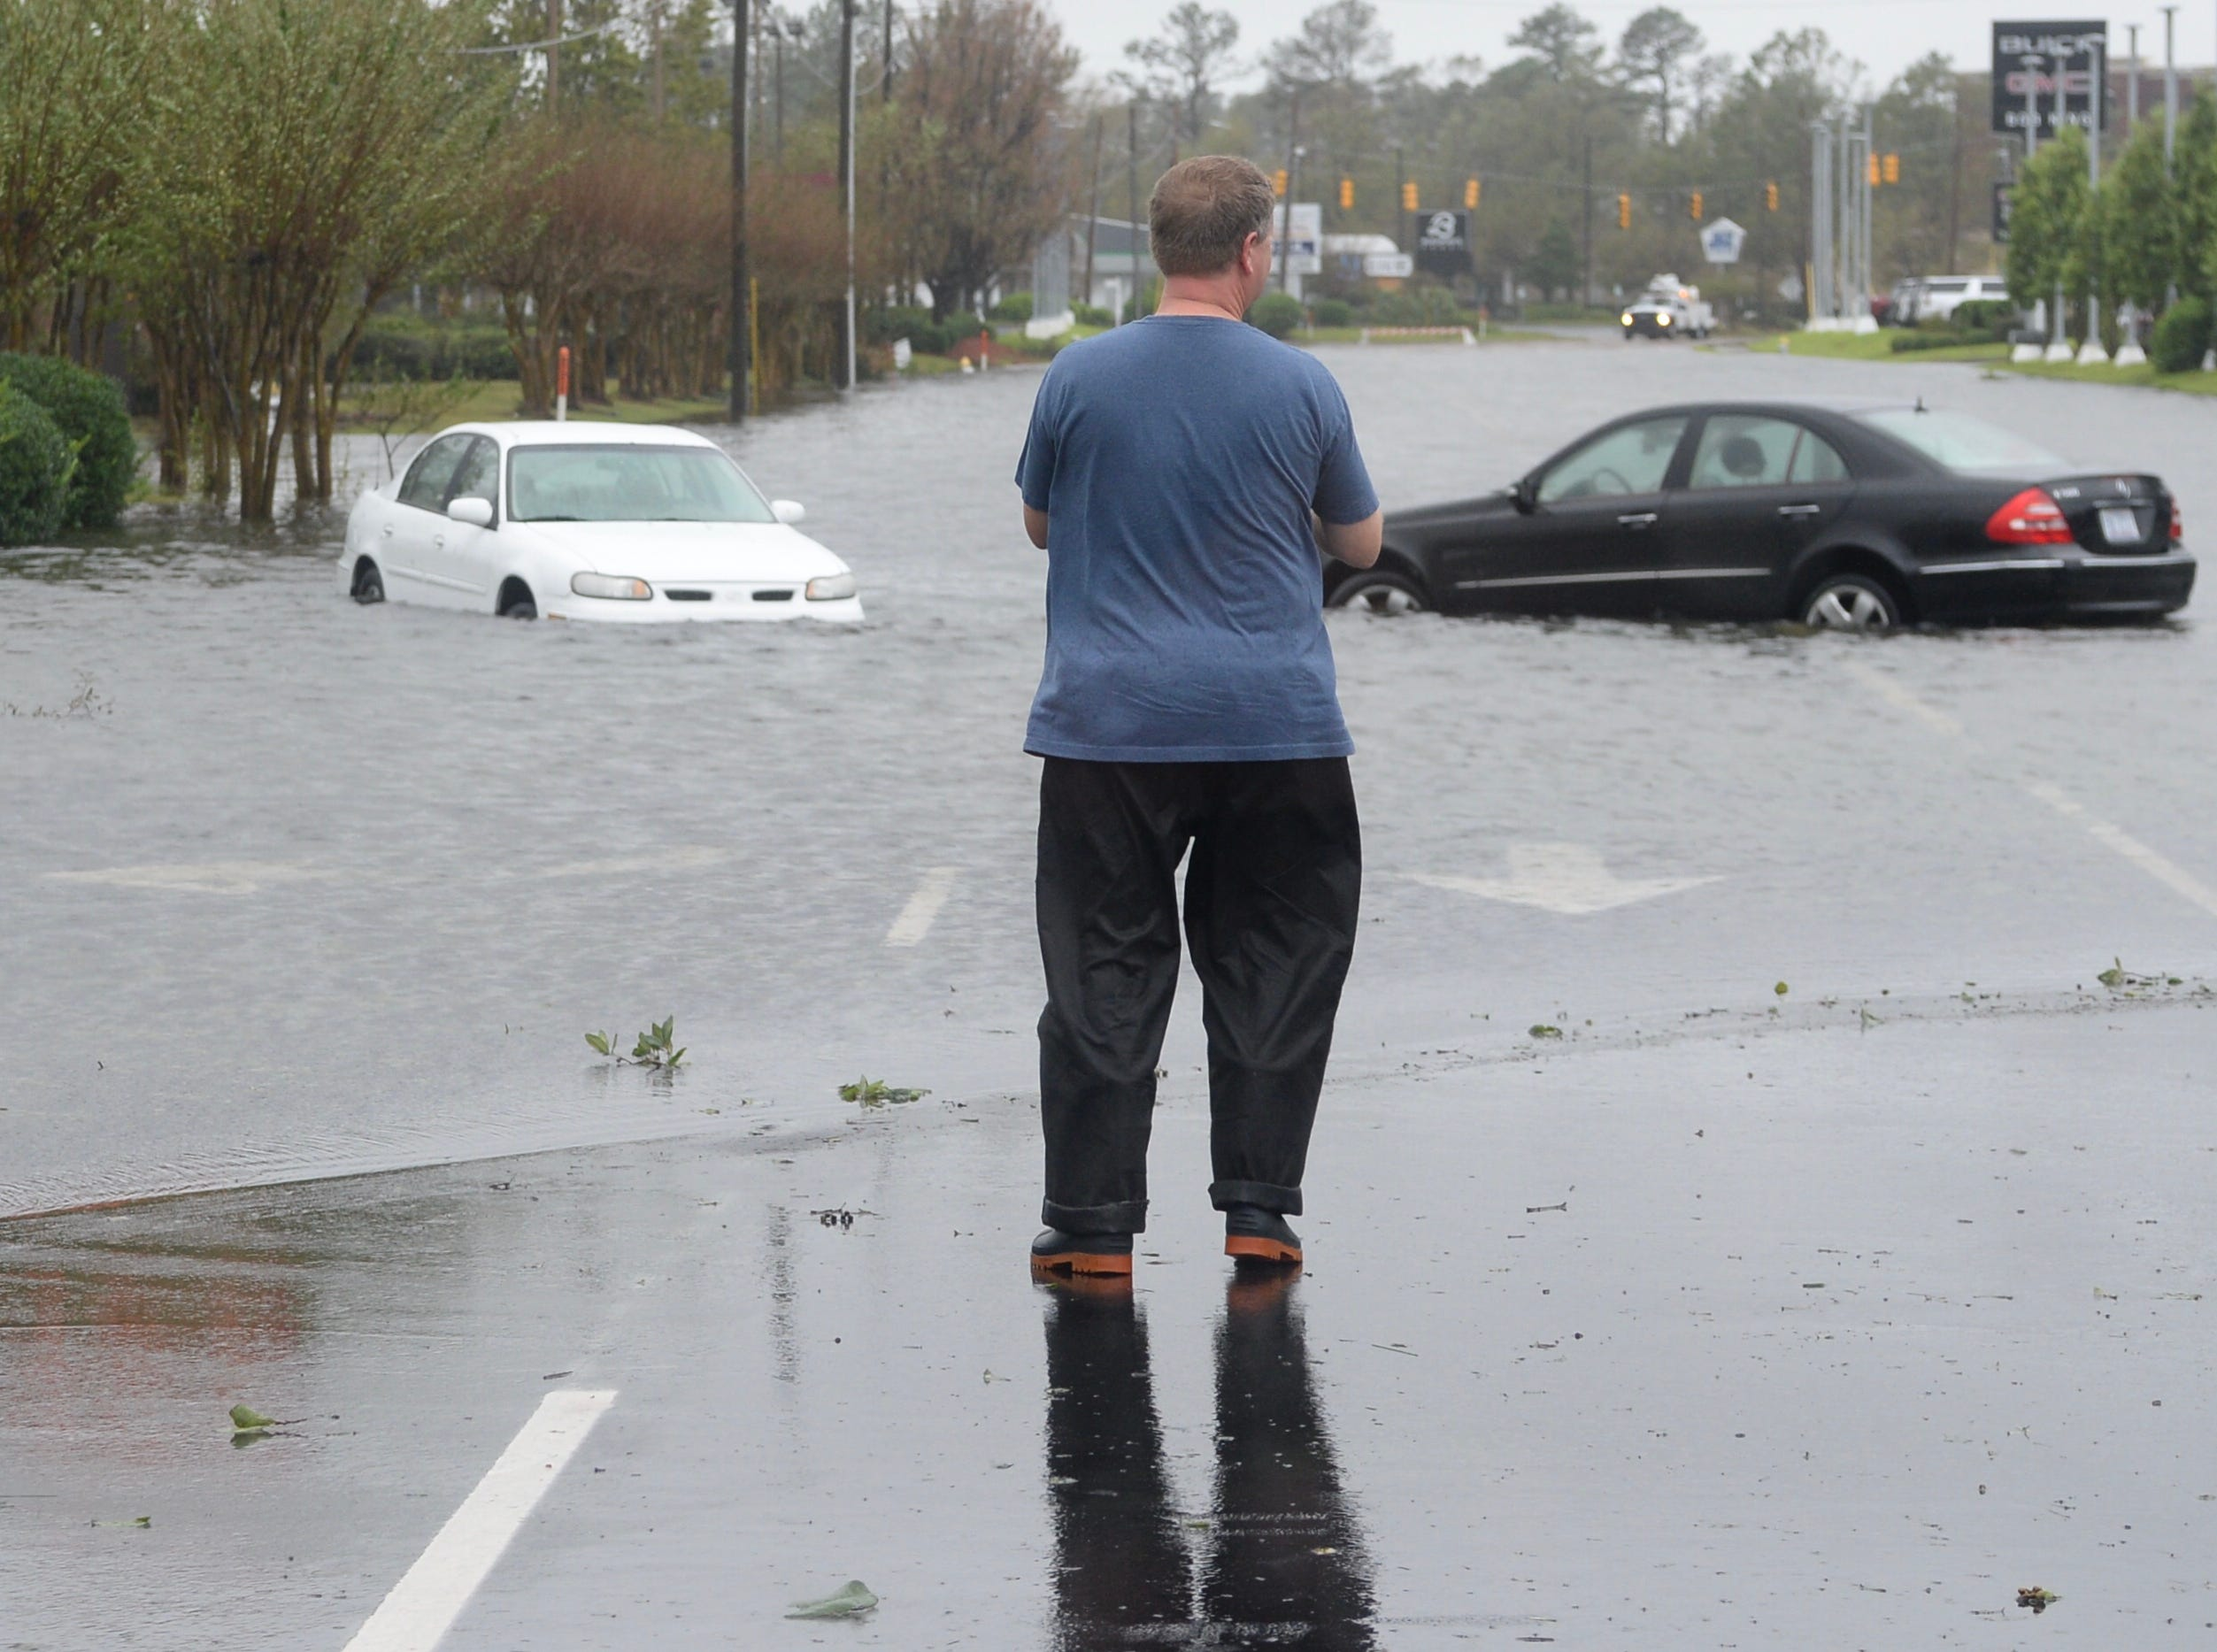 A resident looks at a flooded street in Wilmington, N.C., on Saturday, Sept. 15, 2018.